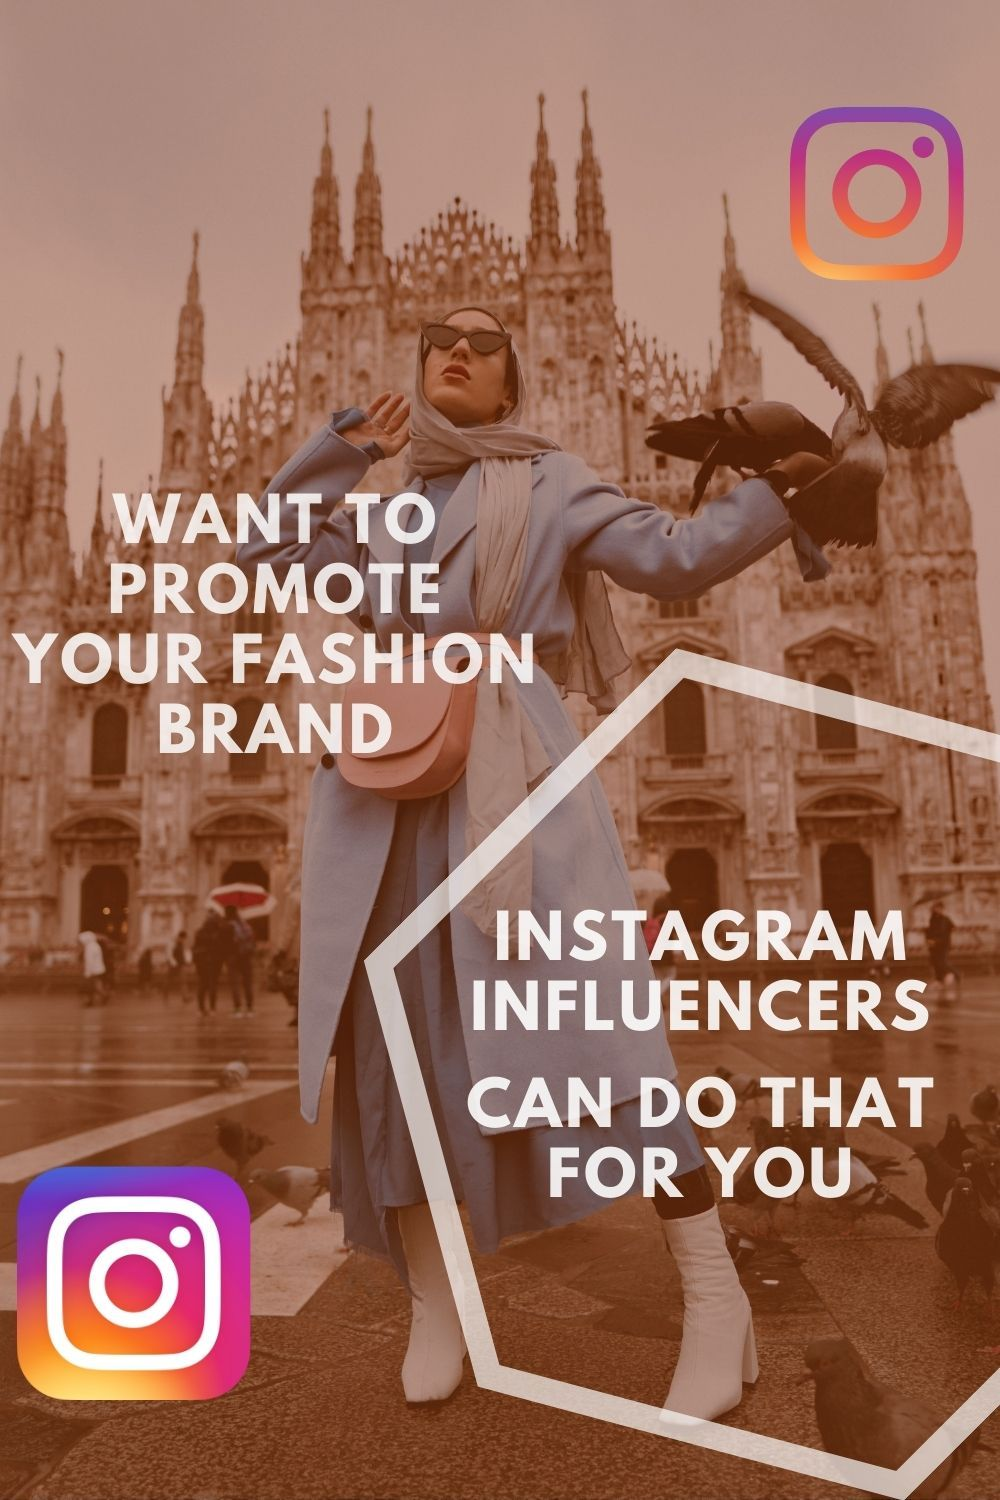 Mirzaariful I Will Find Top Instagram Influencer Of Any Niche For Influencer Marketing For 10 On Fiverr Com Instagram Influencer Top Instagram Influencers Influencer Marketing